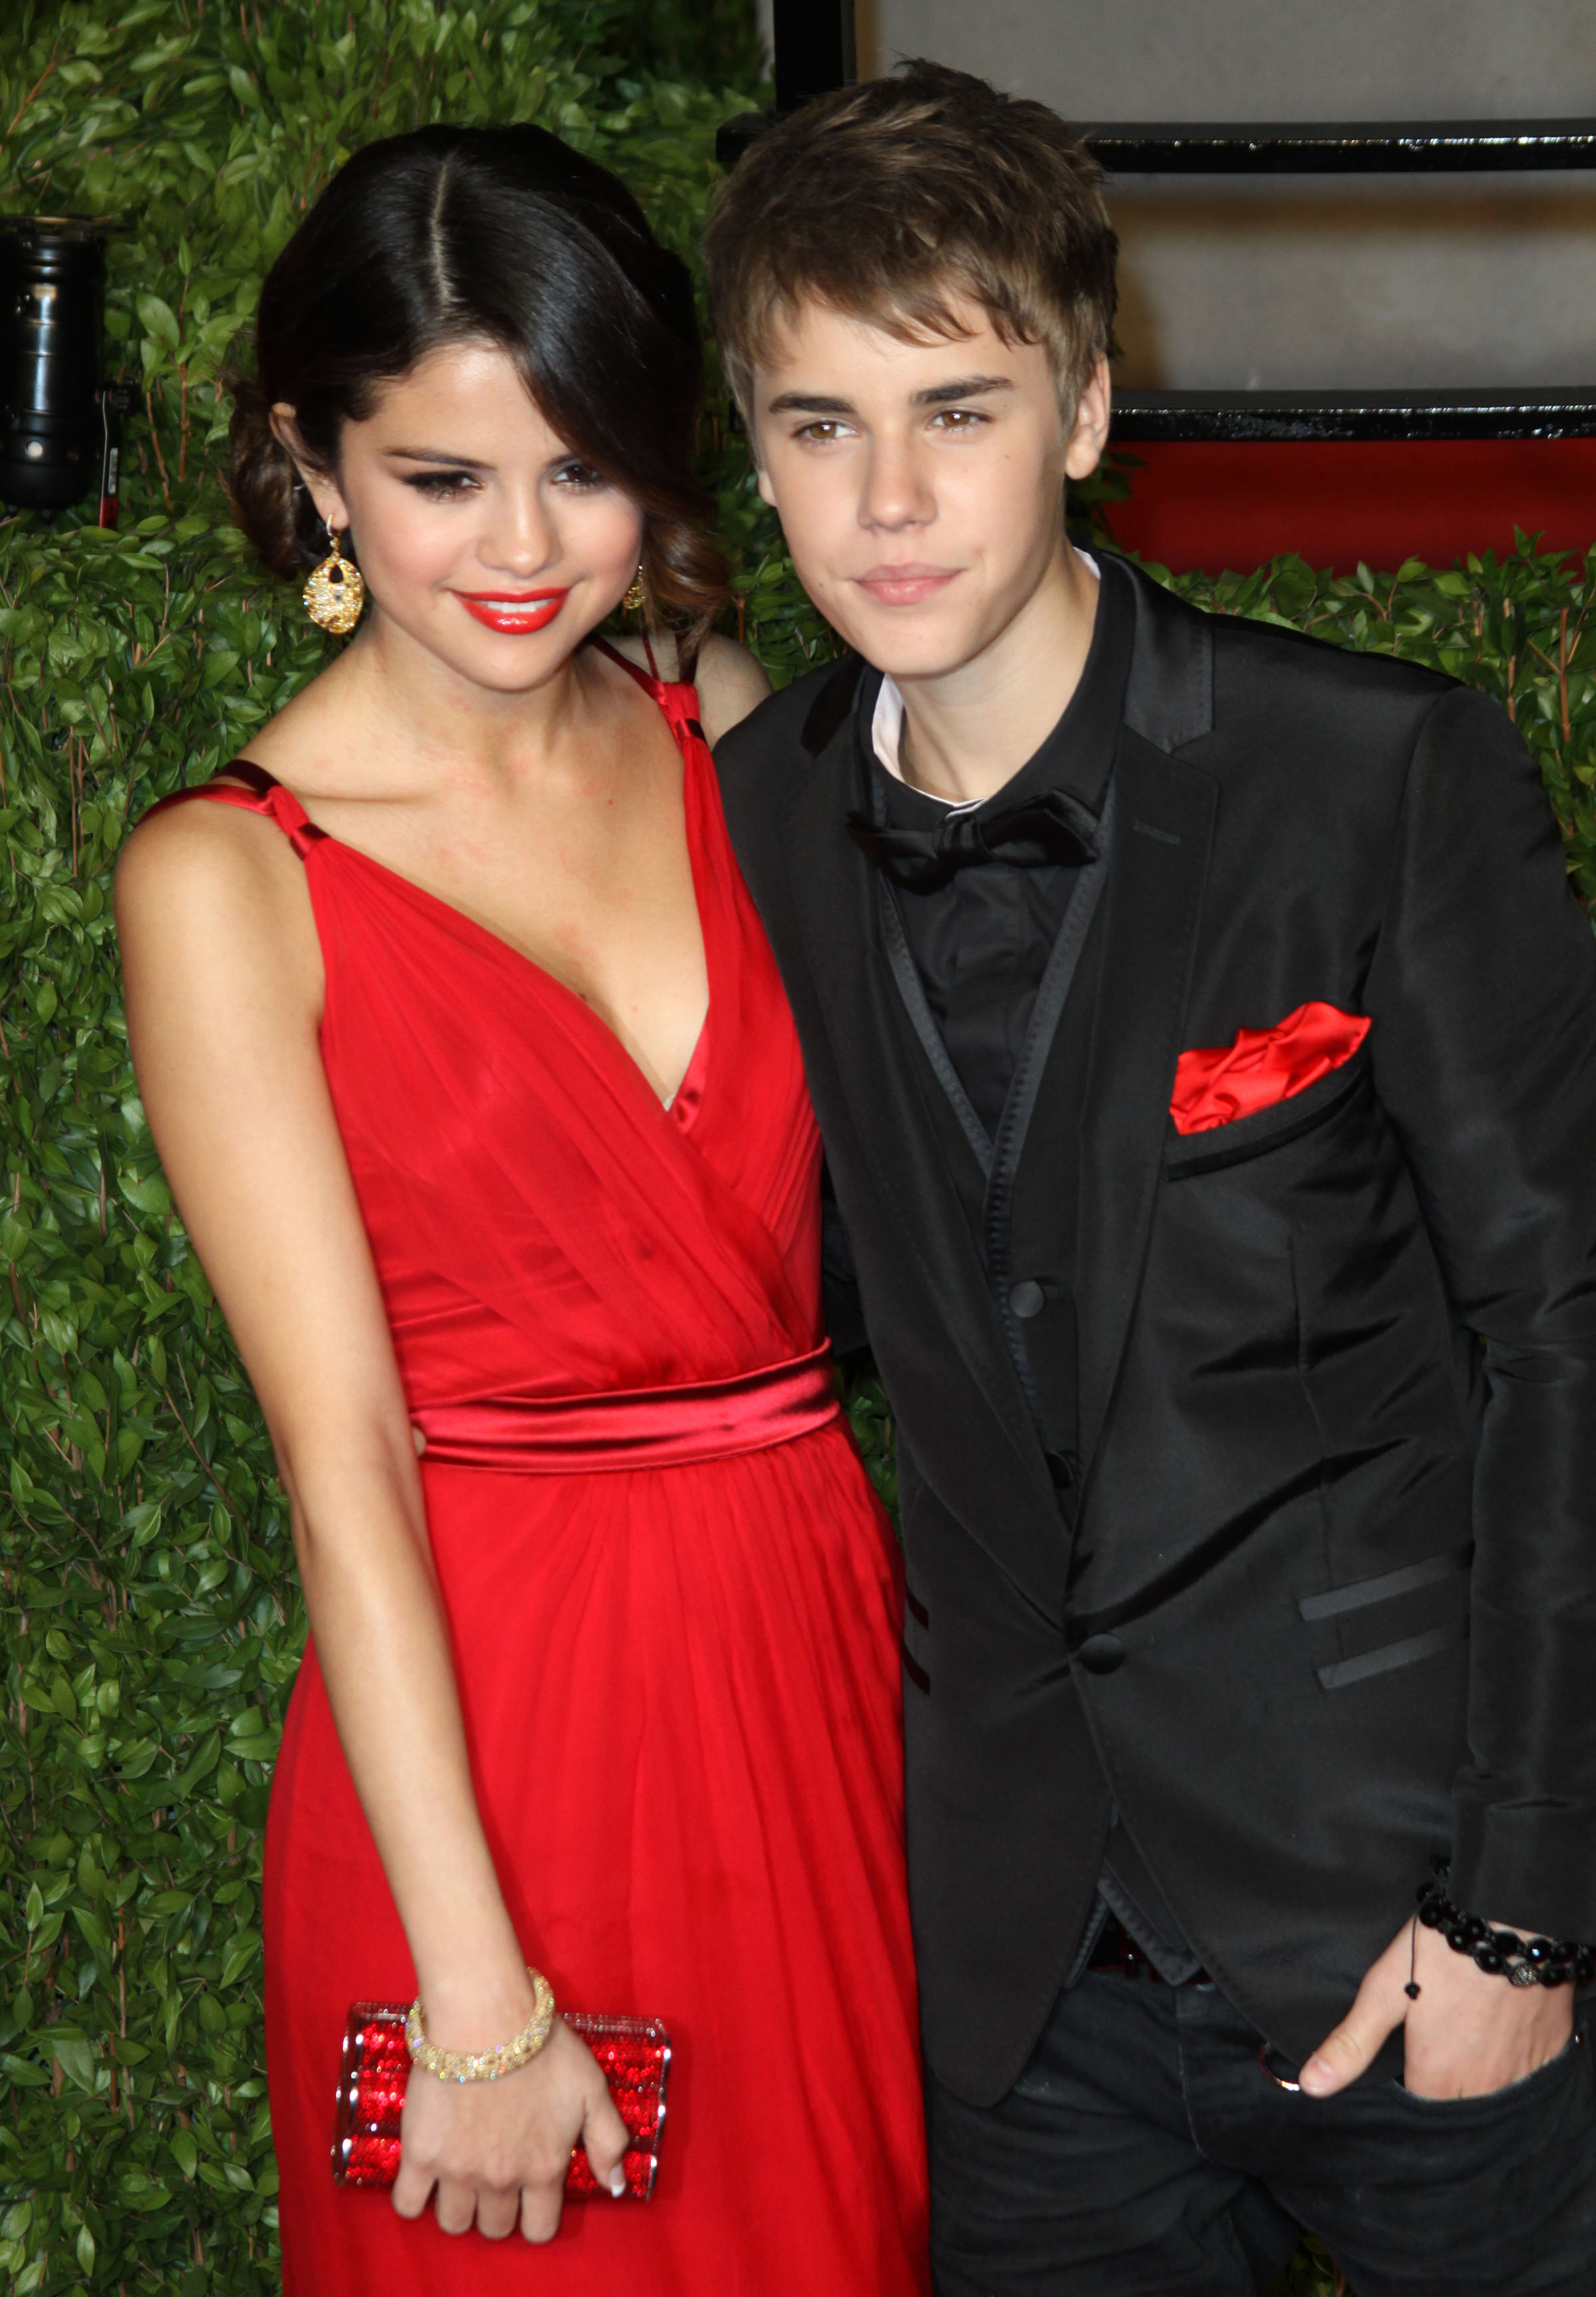 50942378 Why do the good ones never last? Pop sensation Justin Bieber and his girlfriend Selena Gomez have called it quits after nearly two years of dating. File photos show the couple during happier times. FameFlynet, Inc - Beverly Hills, CA, USA - +1 (818) 307-4813